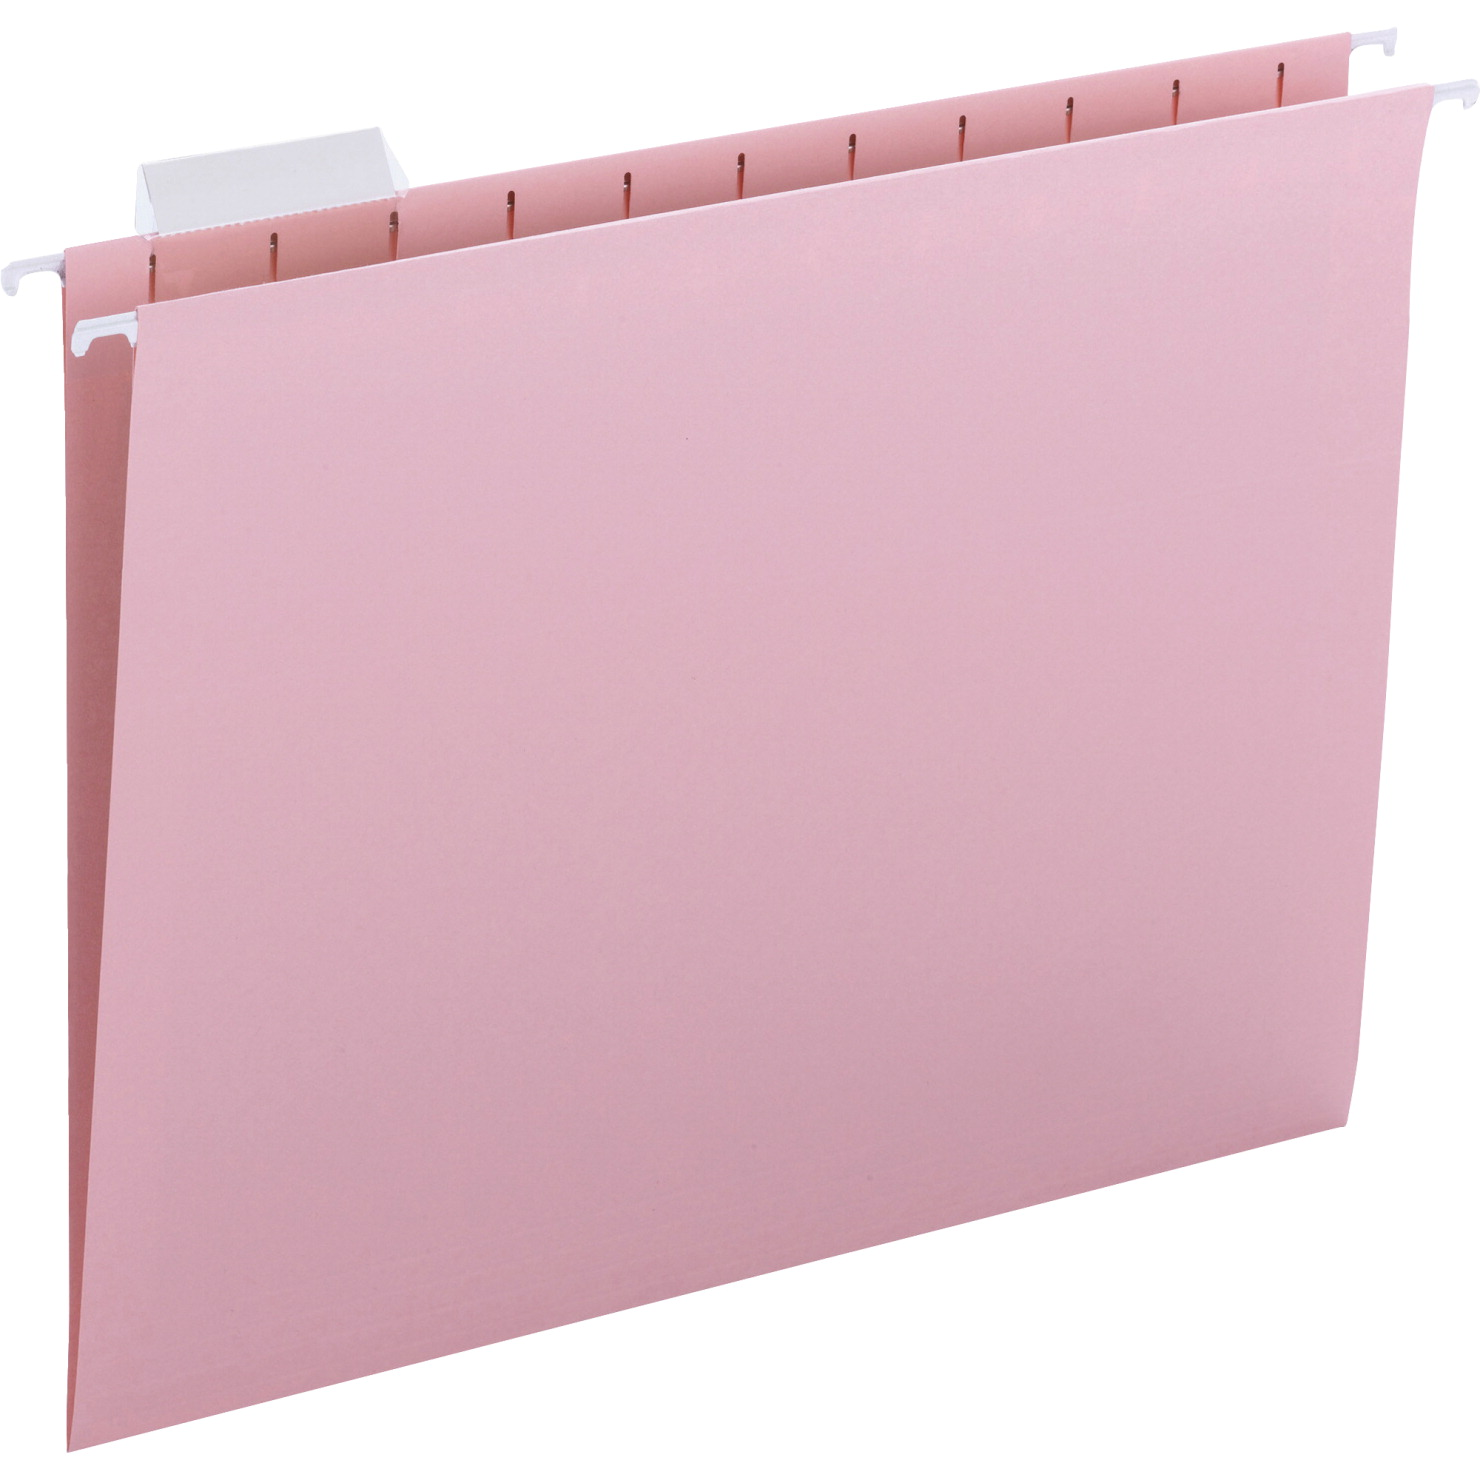 Hanging File Folder - SCHOOL SPECIALTY MARKETPLACE